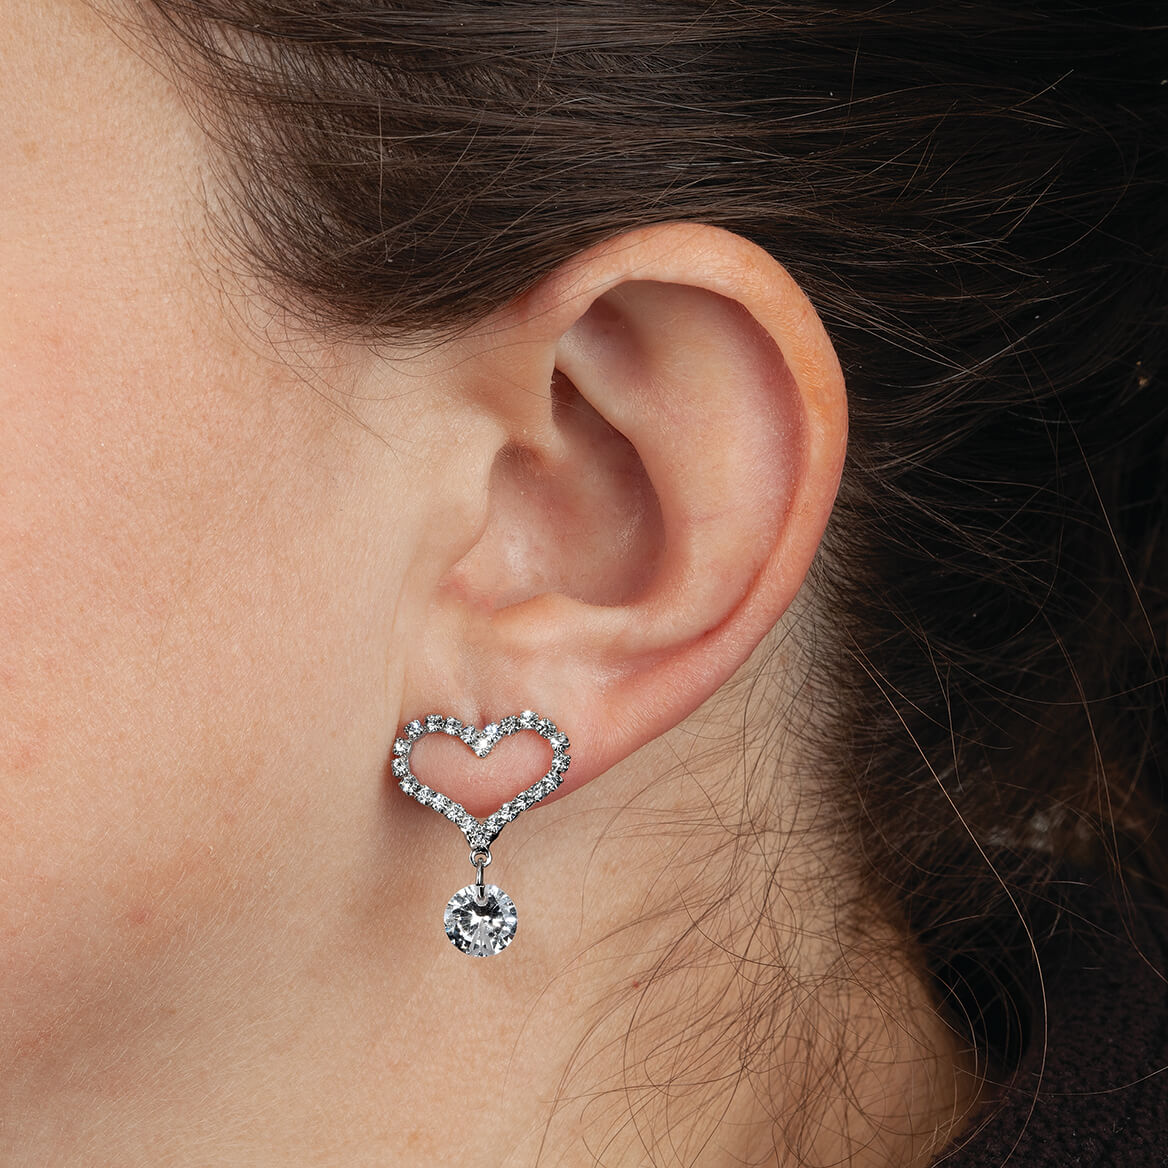 Heart Shaped CZ Earrings with Crystal Dangle-370356